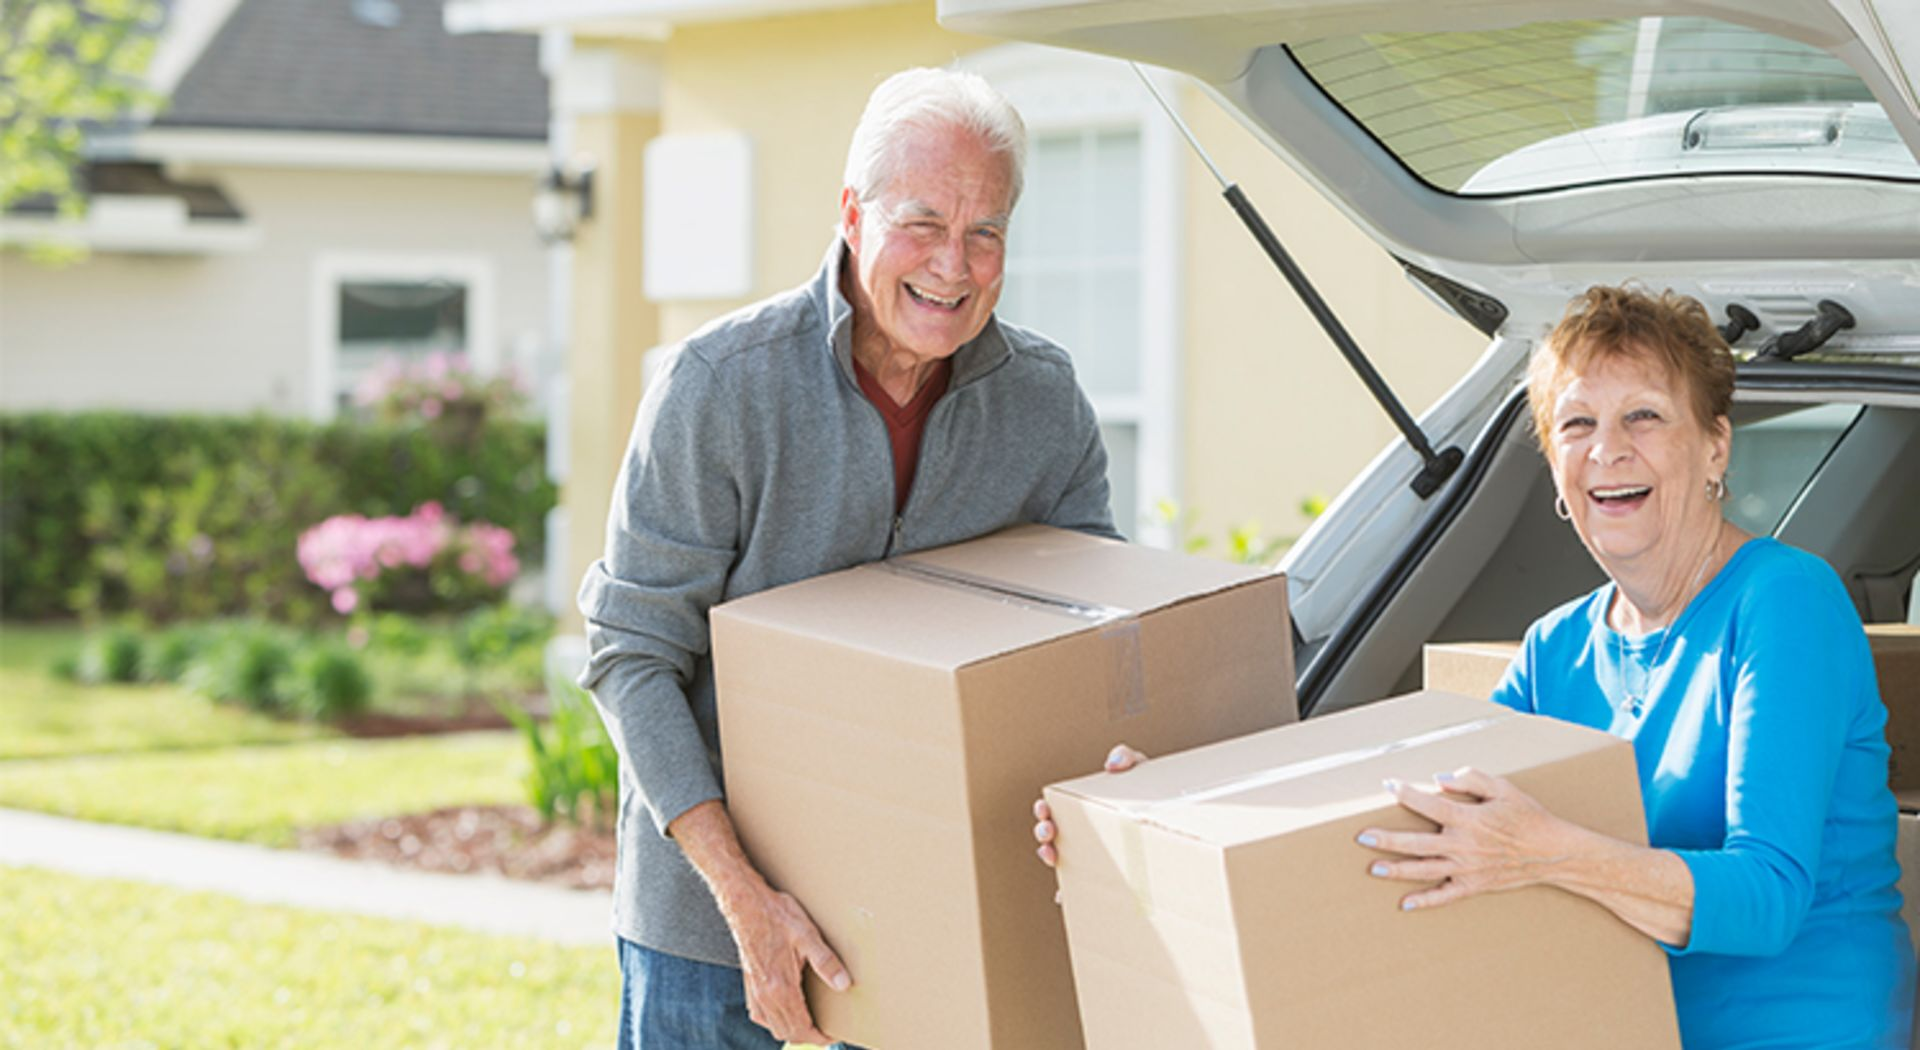 Baby Boomers are Downsizing, Are You Ready to Move?